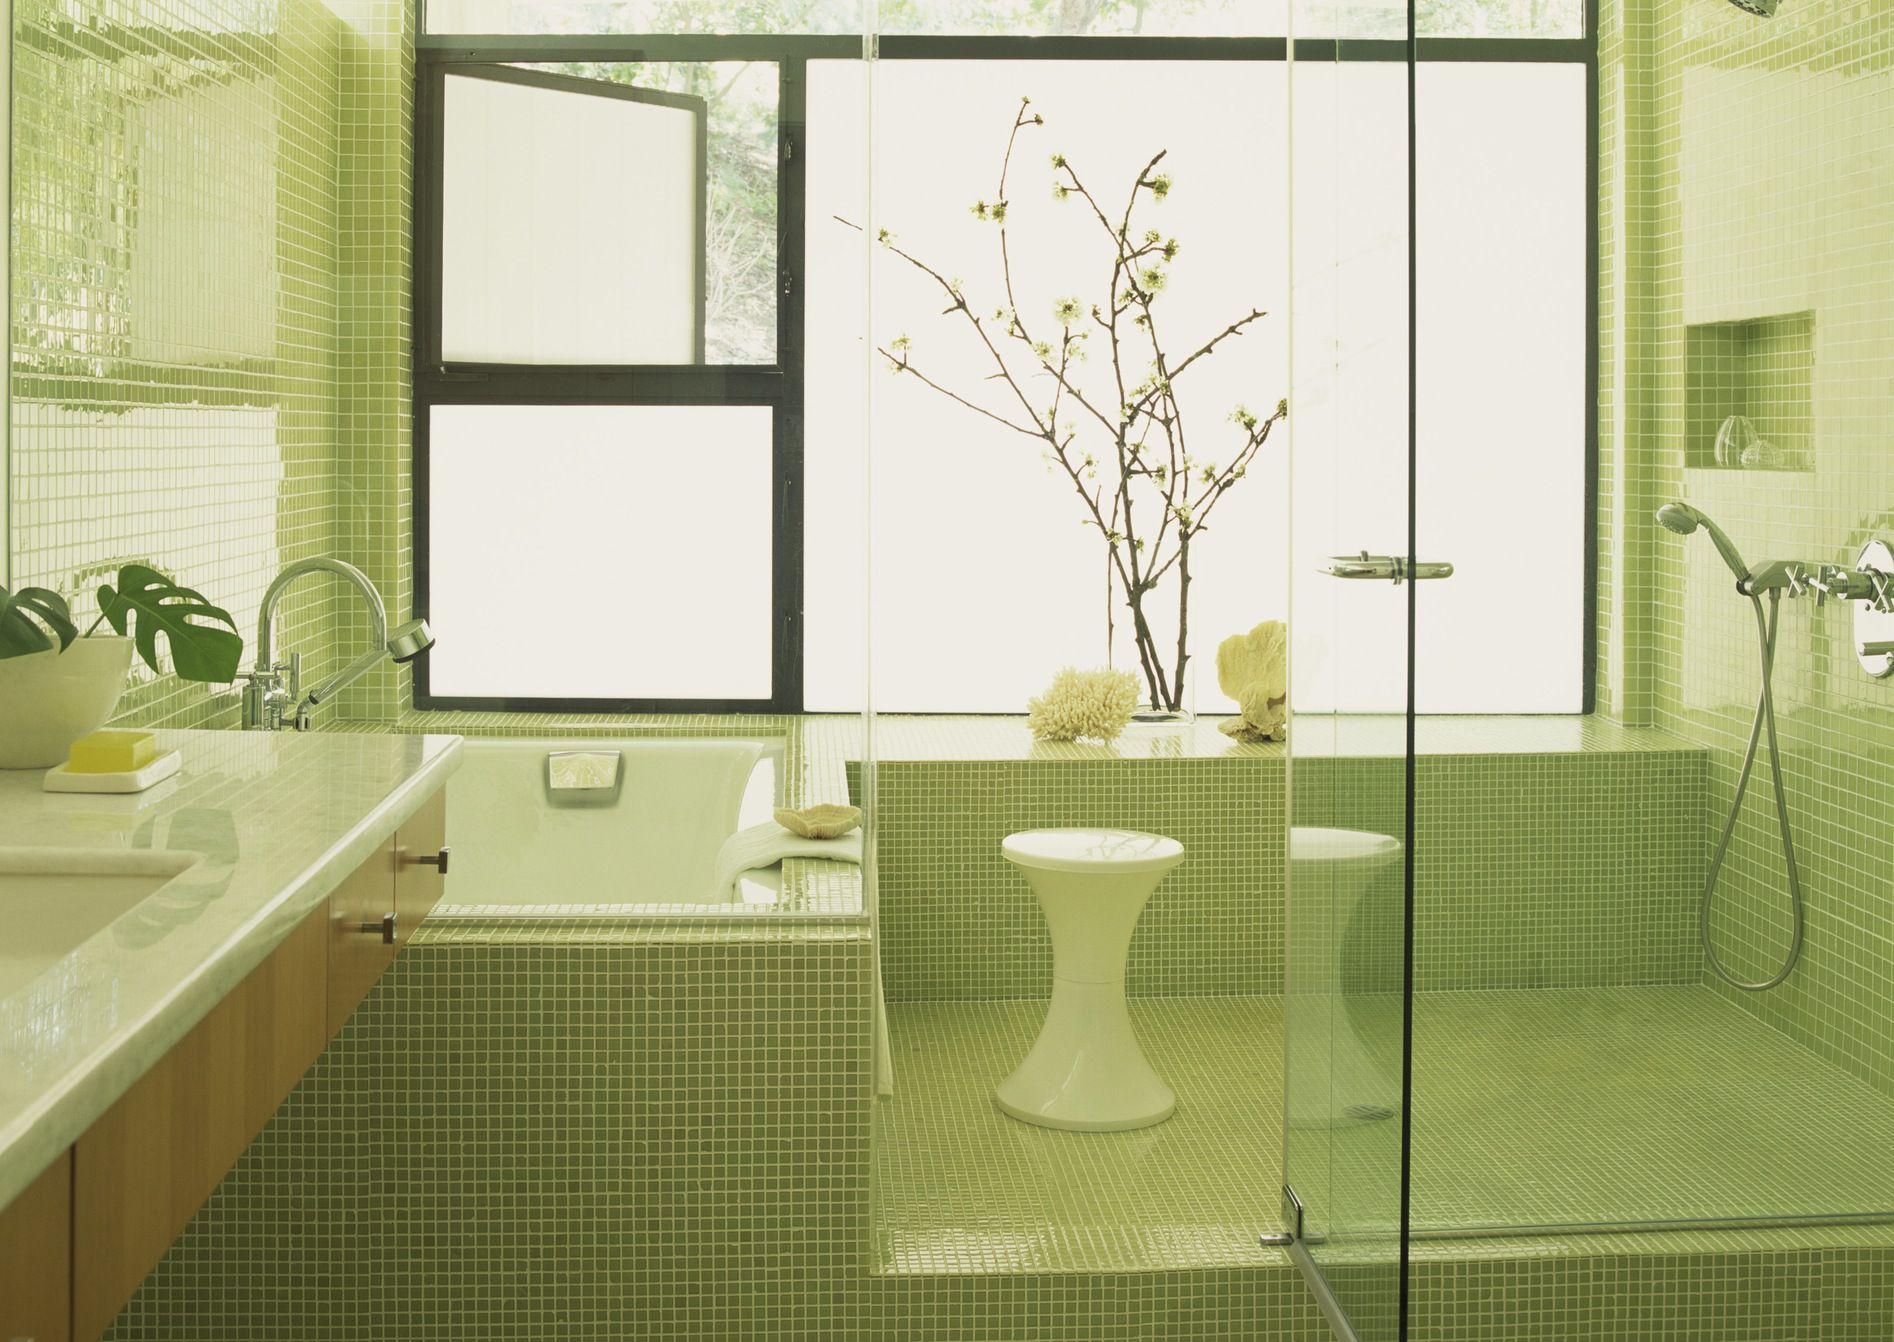 The four laws of tiling kitchen bathroom tiles dailygadgetfo Choice Image